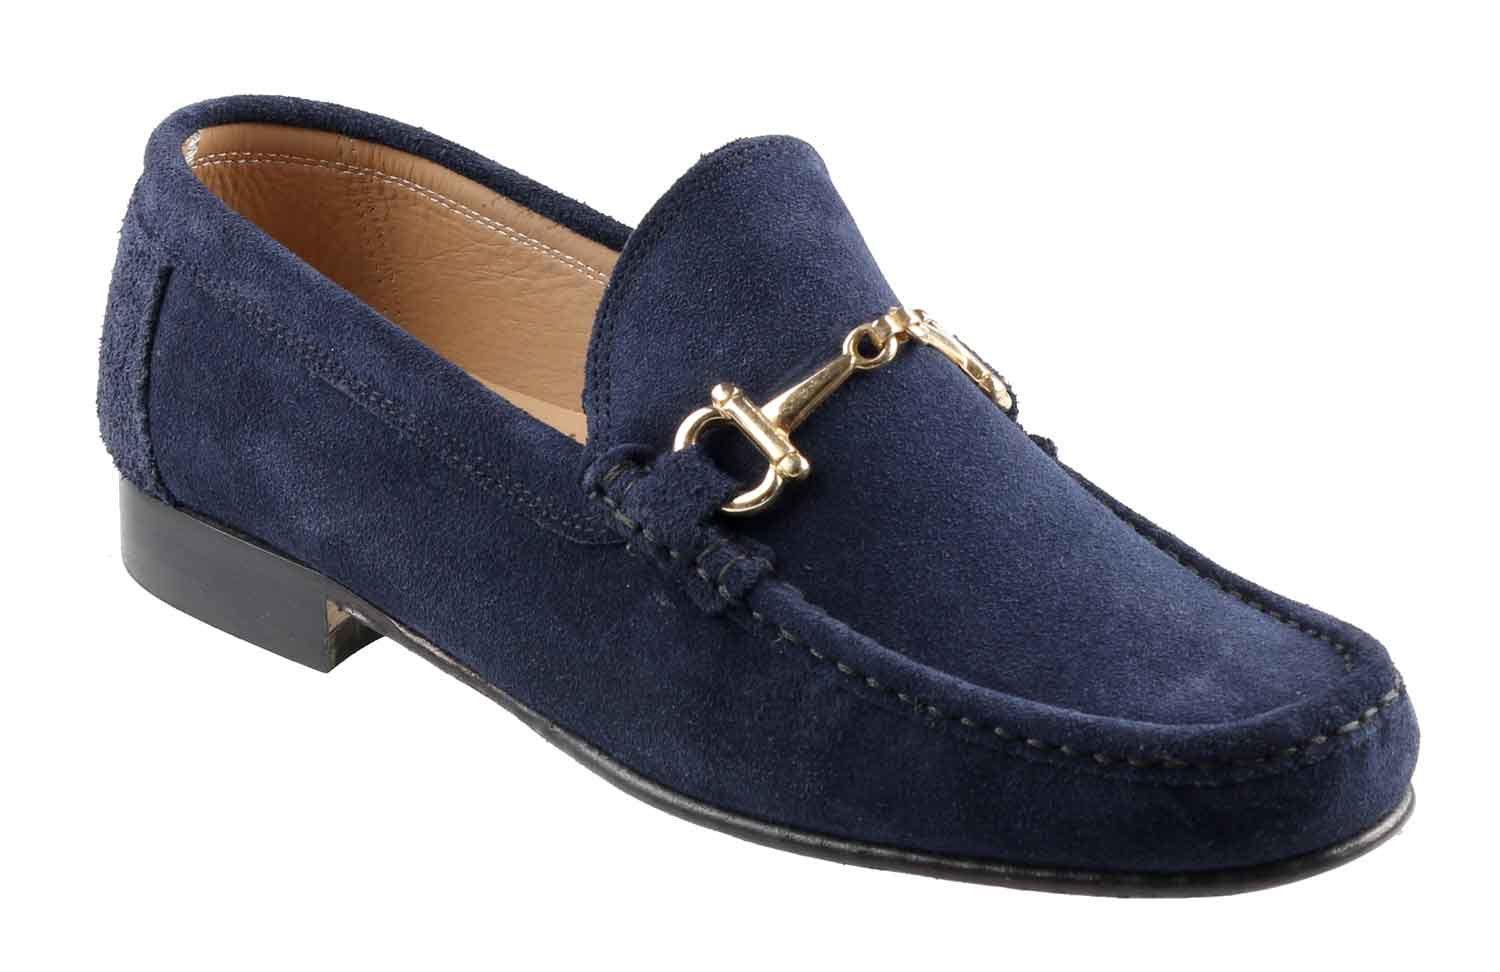 Mens Rubber Sole Suede Tassel Loafer Shoes